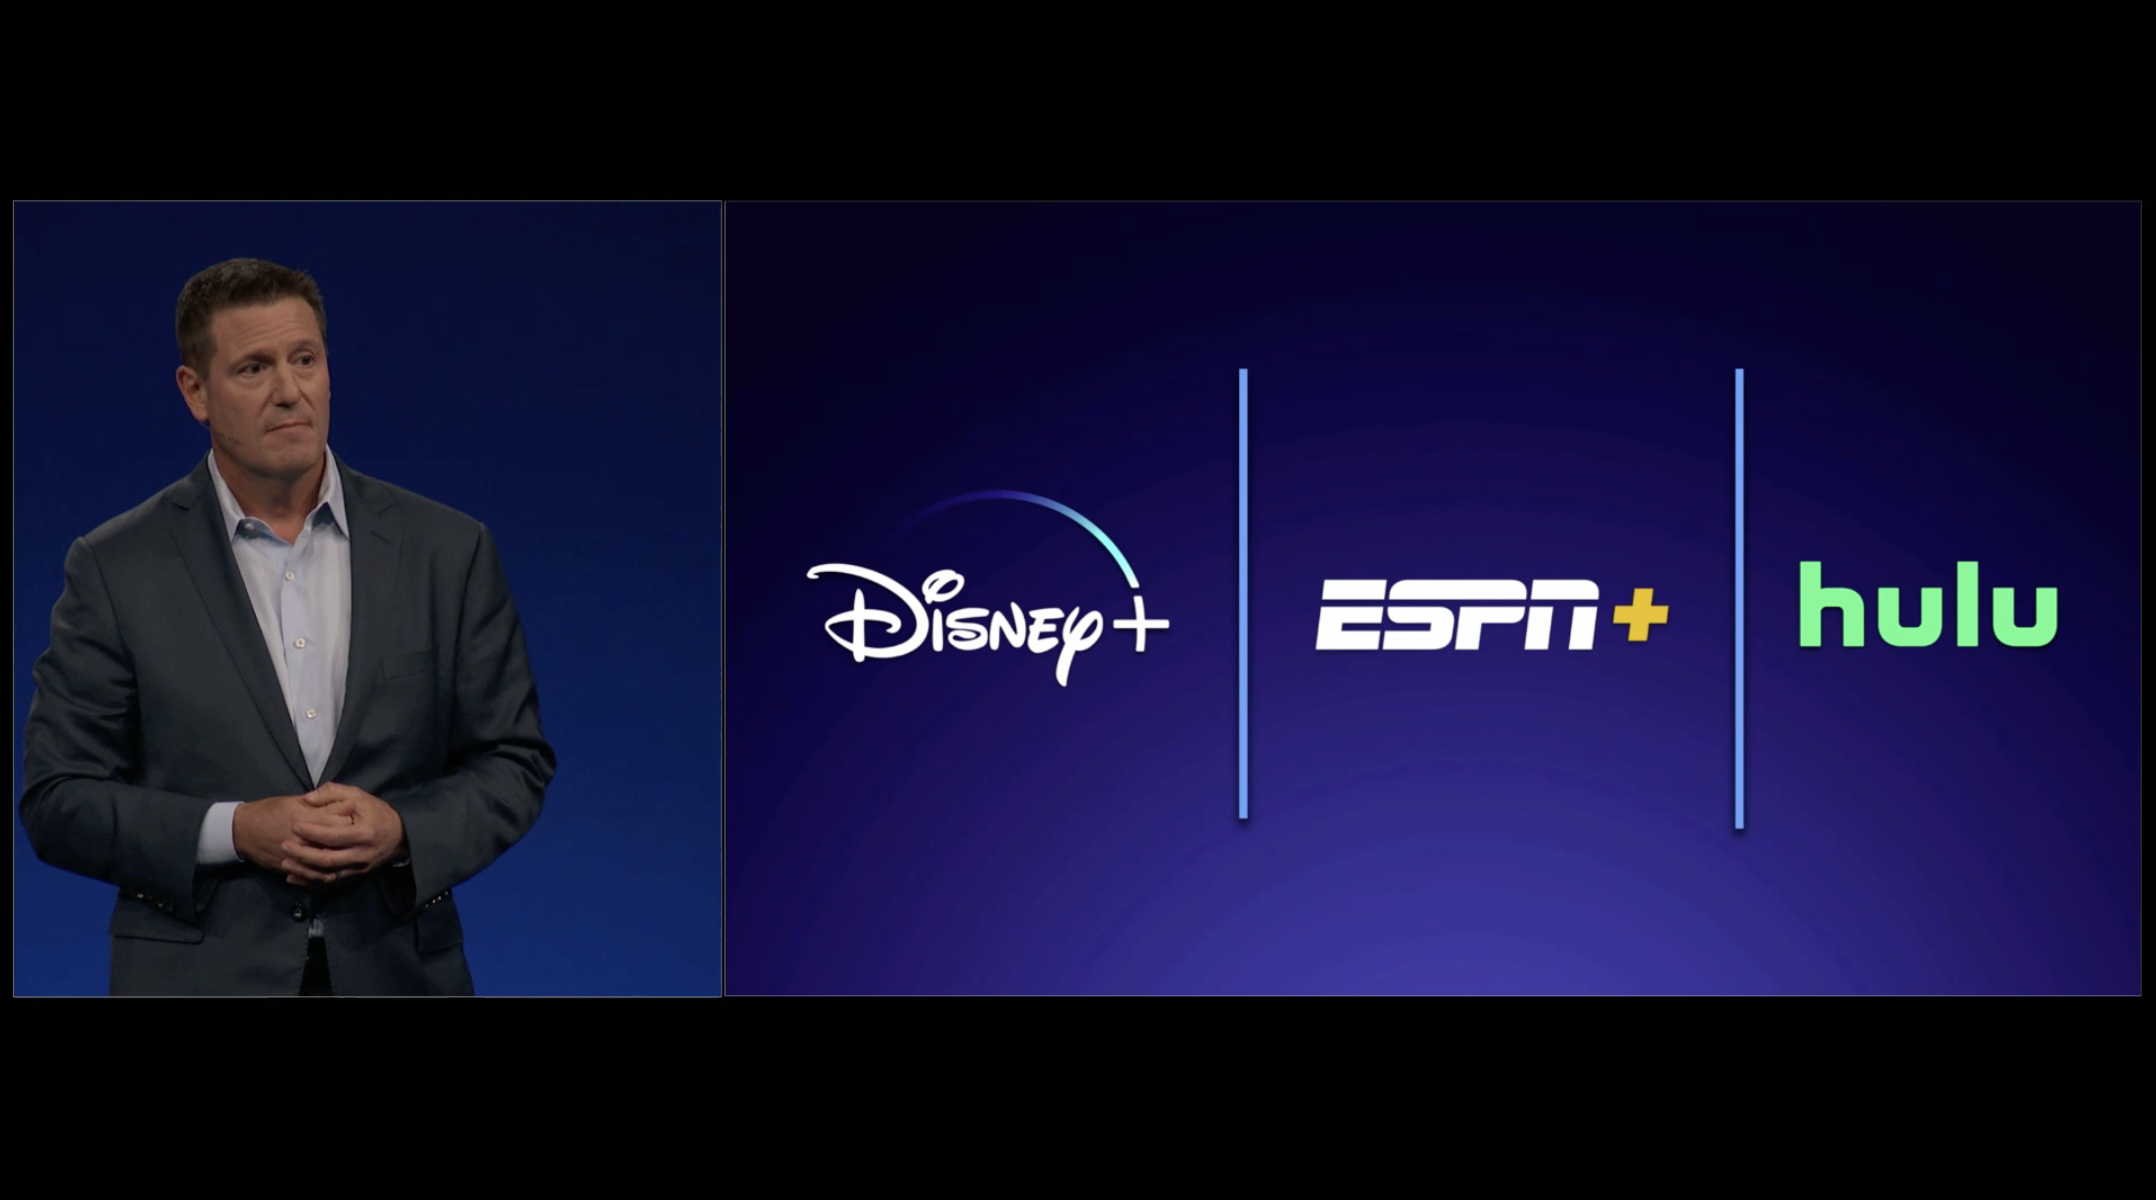 Disney offers $12.99 streaming bundle for Disney+,Hulu & ESPN+